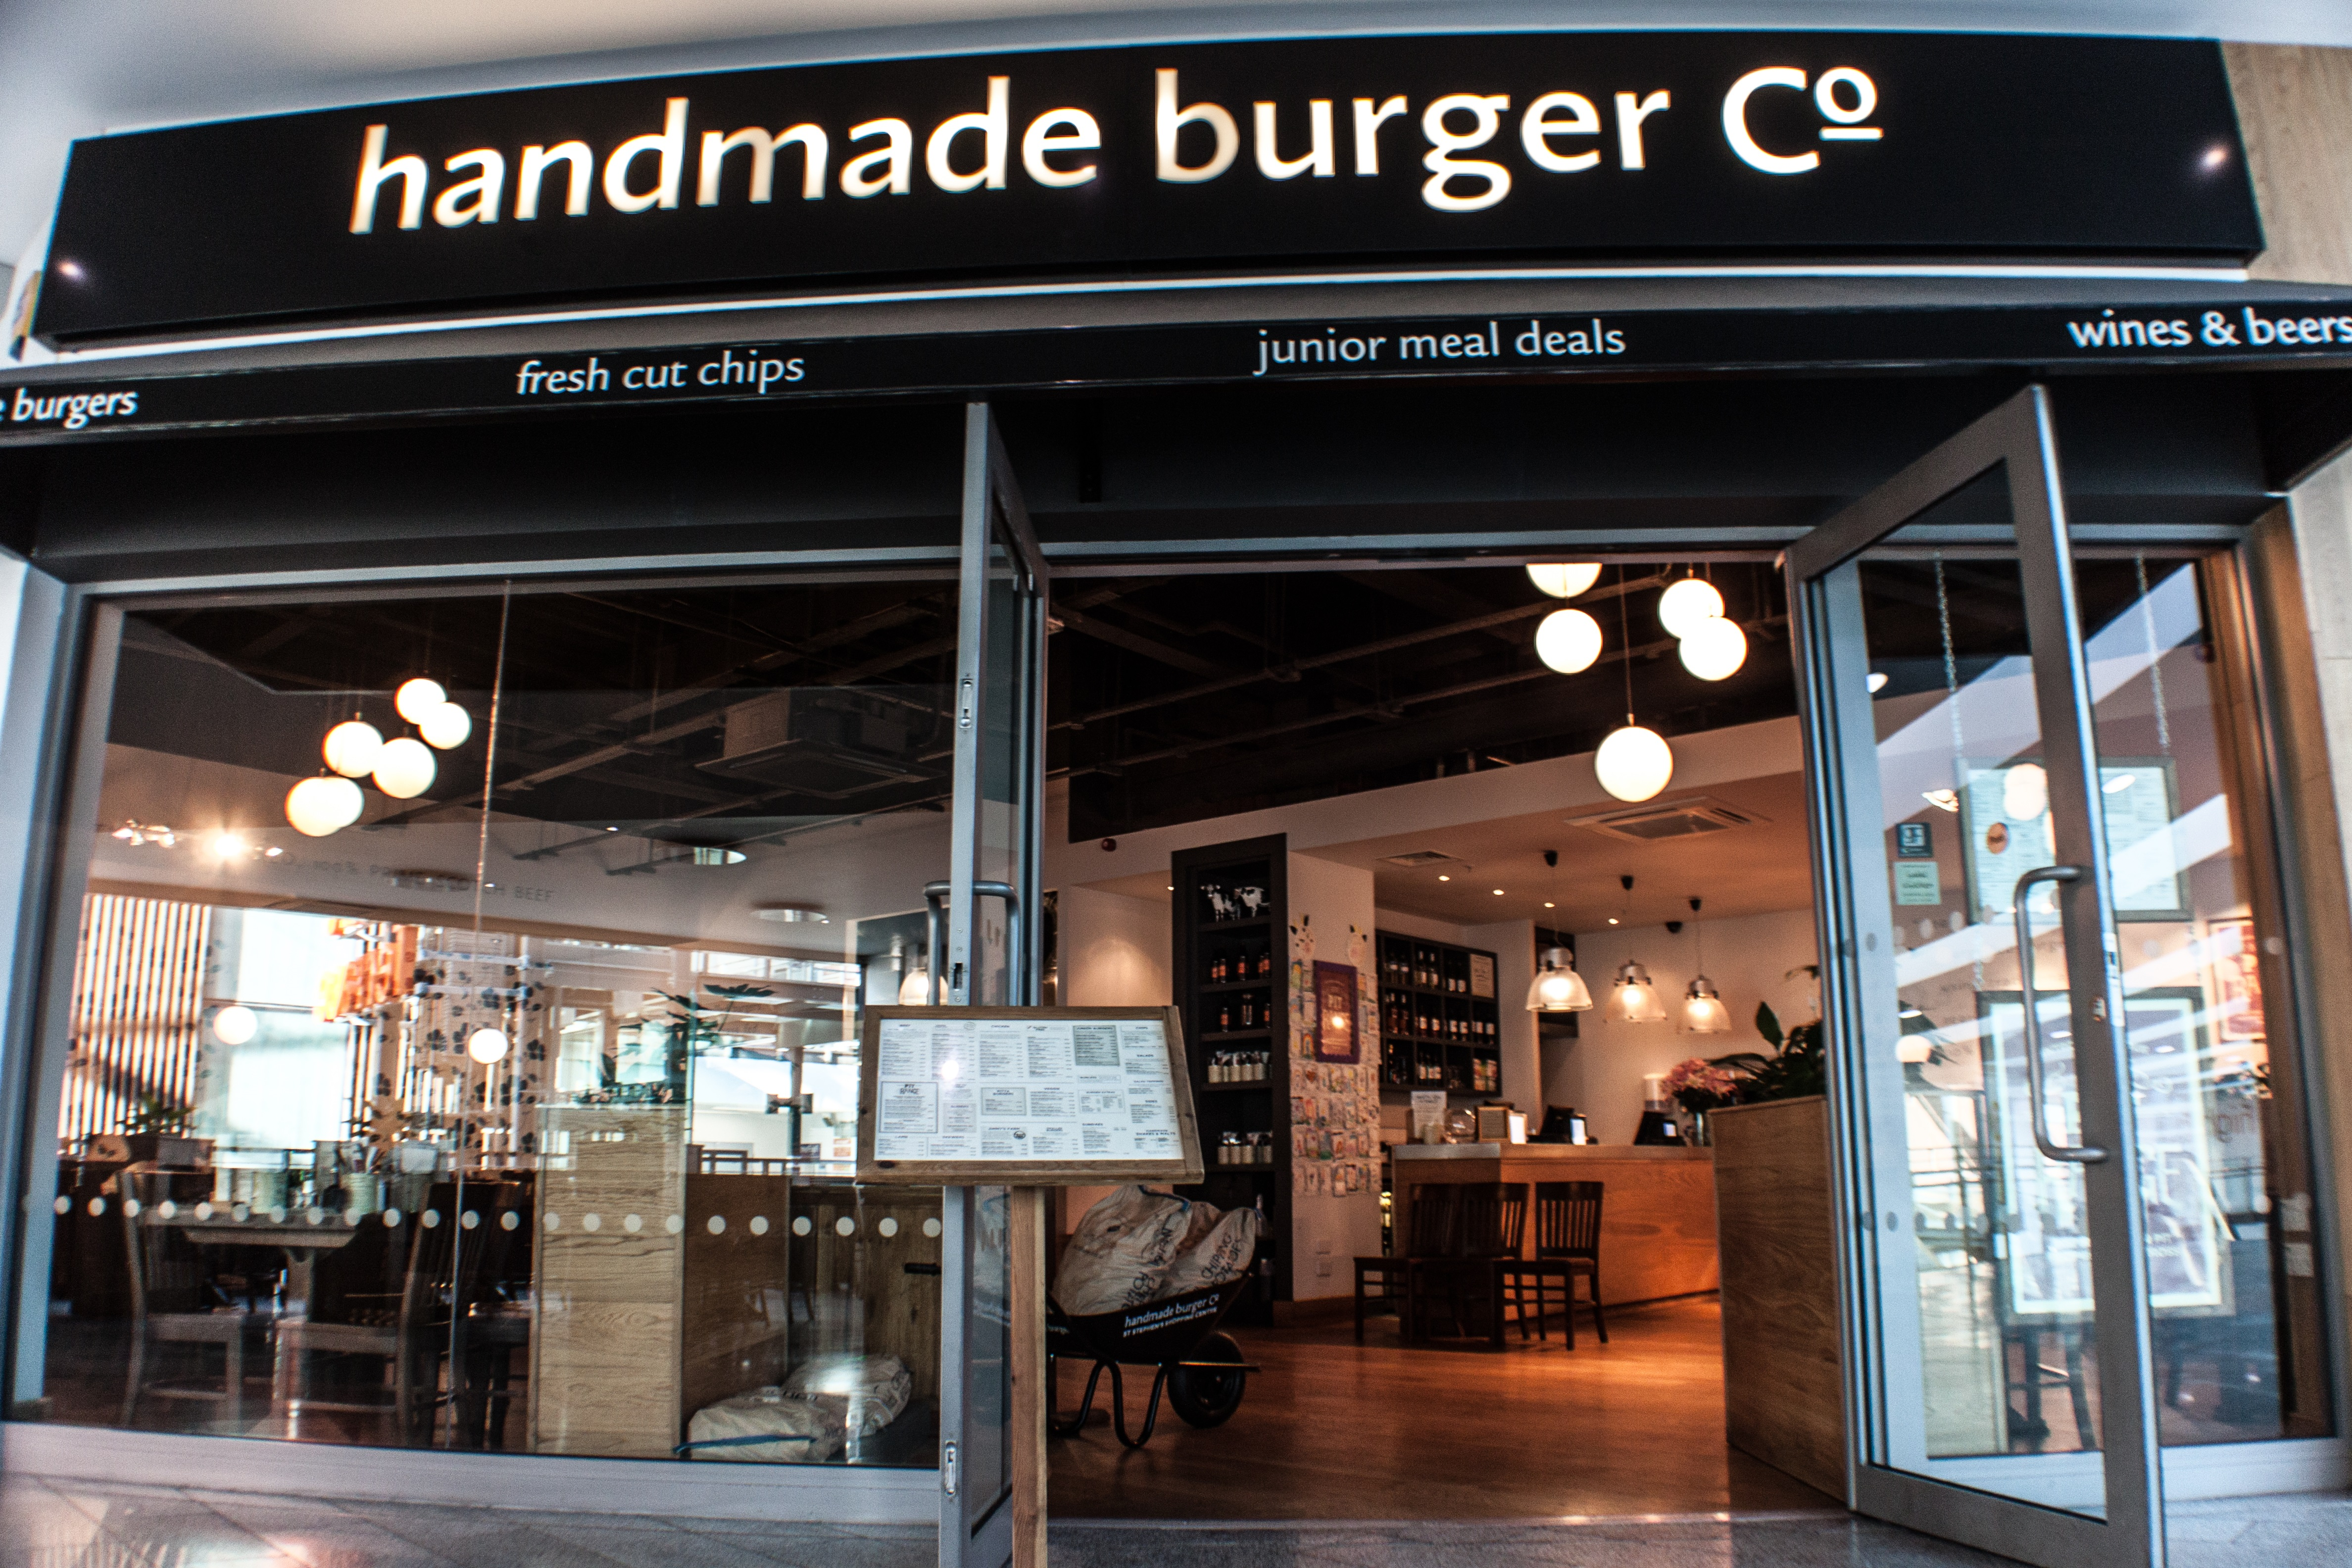 handmade burger Co - Hull - East Riding of Yorkshire